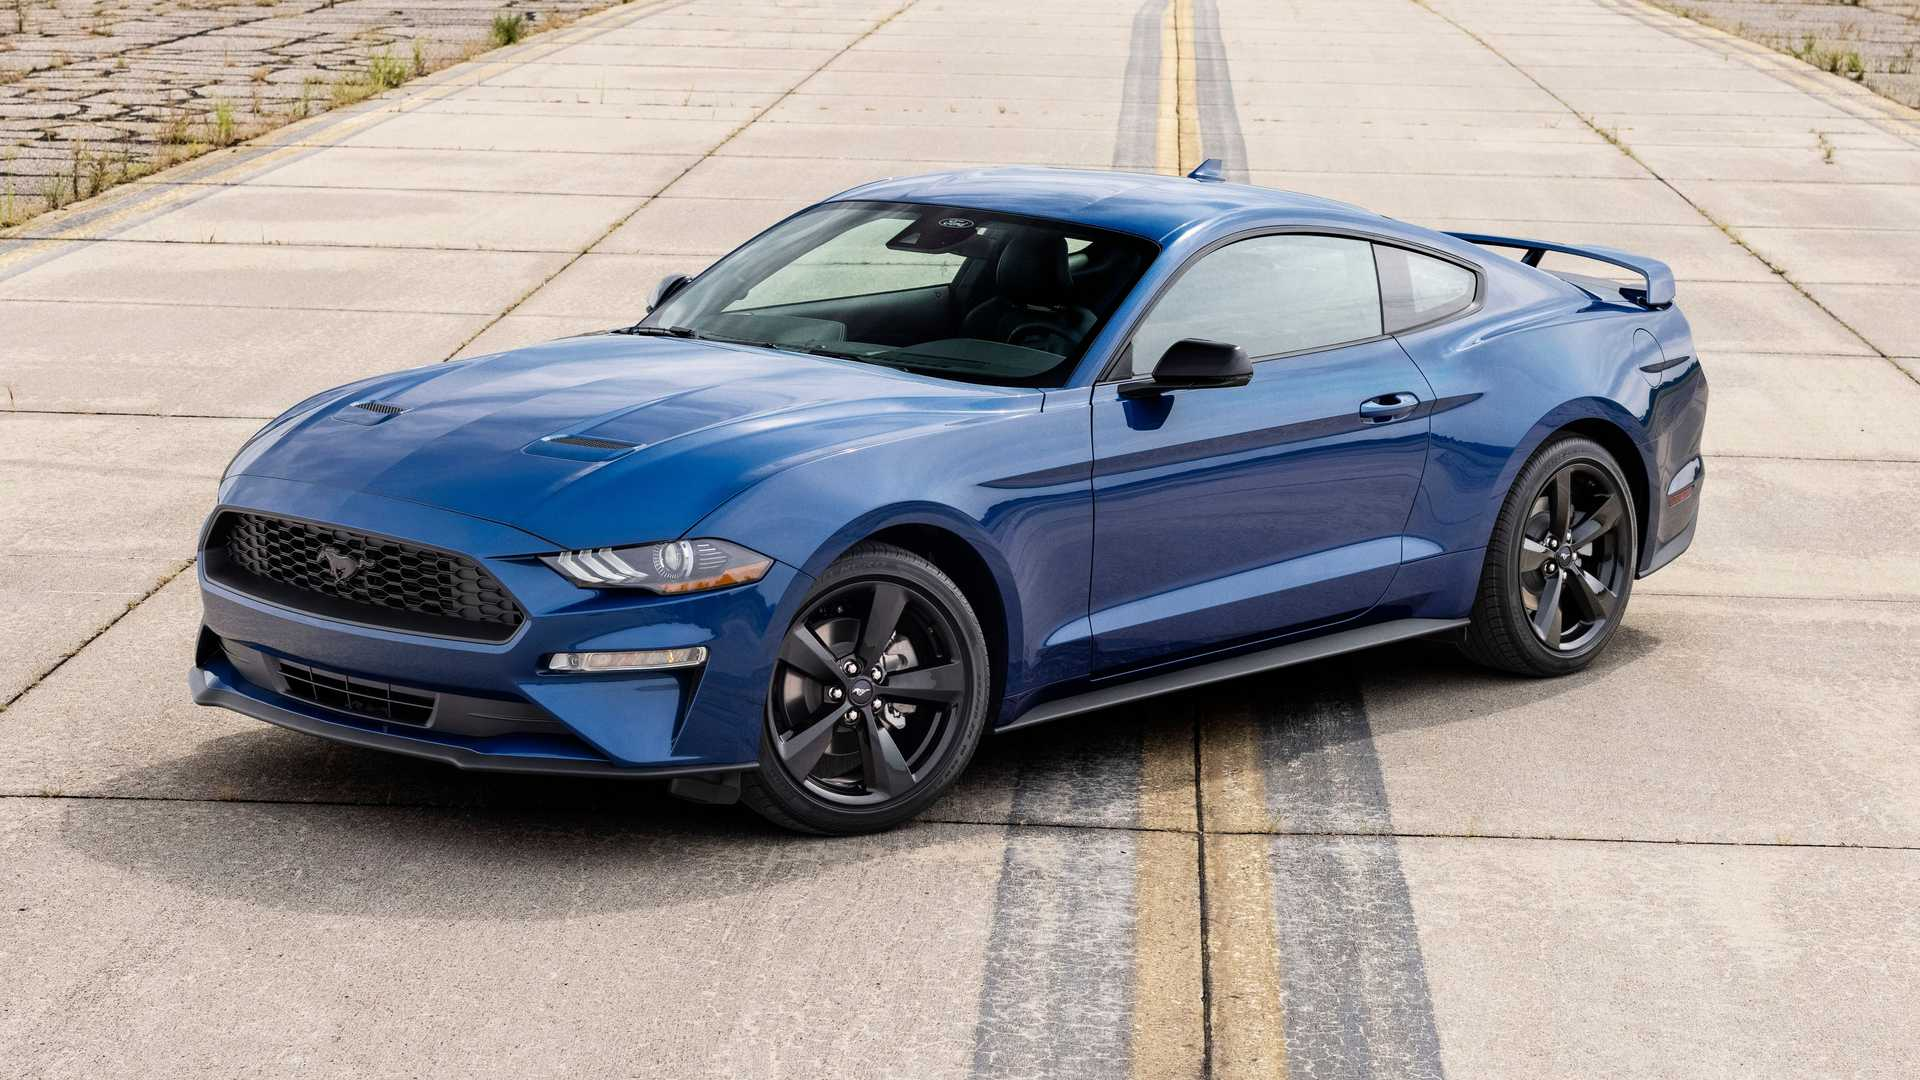 2022 Ford Mustang Stealth Edition